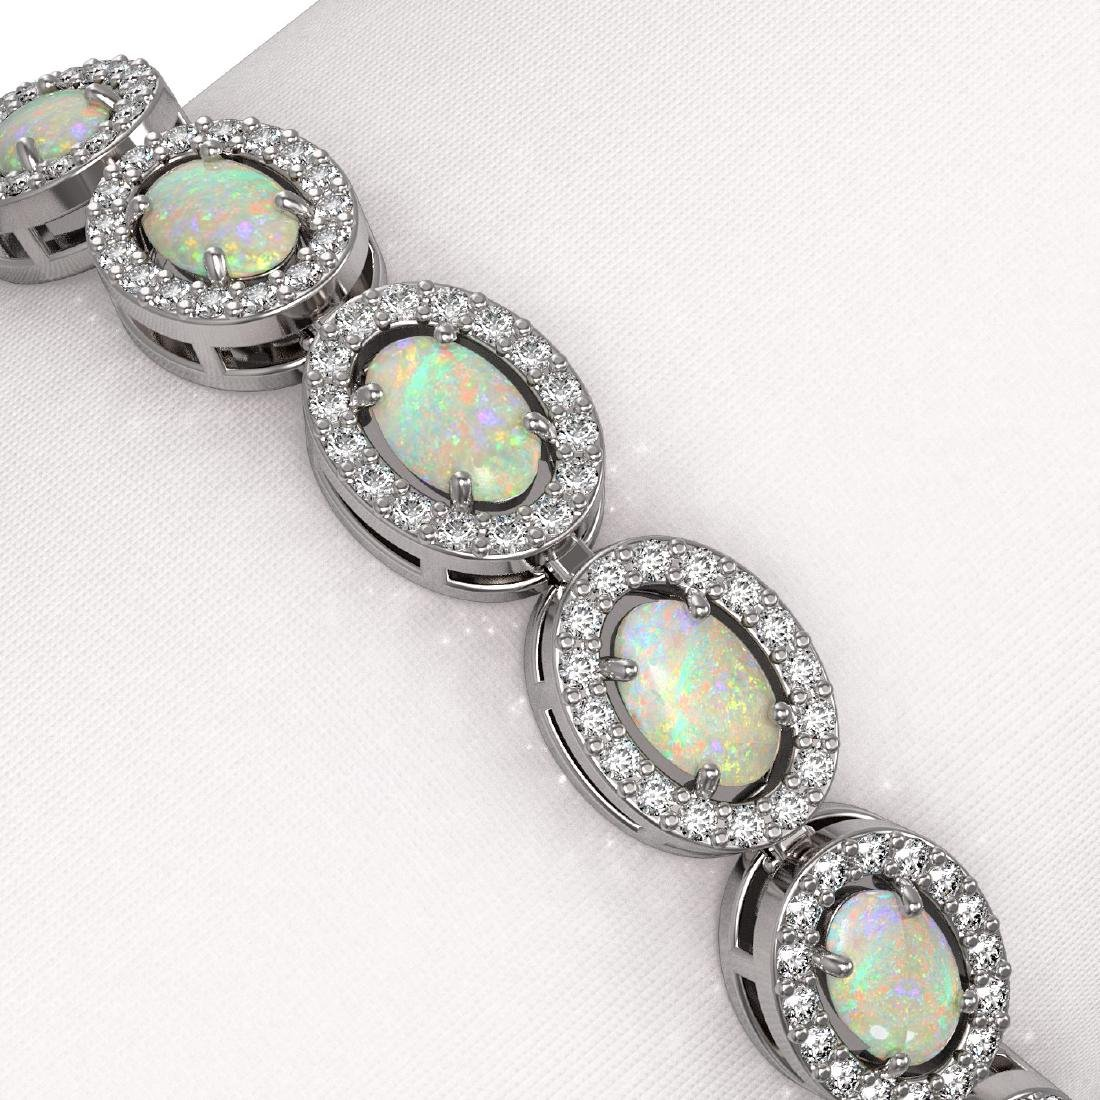 8.28 CTW Opal & Diamond Halo Bracelet 10K White Gold - 3